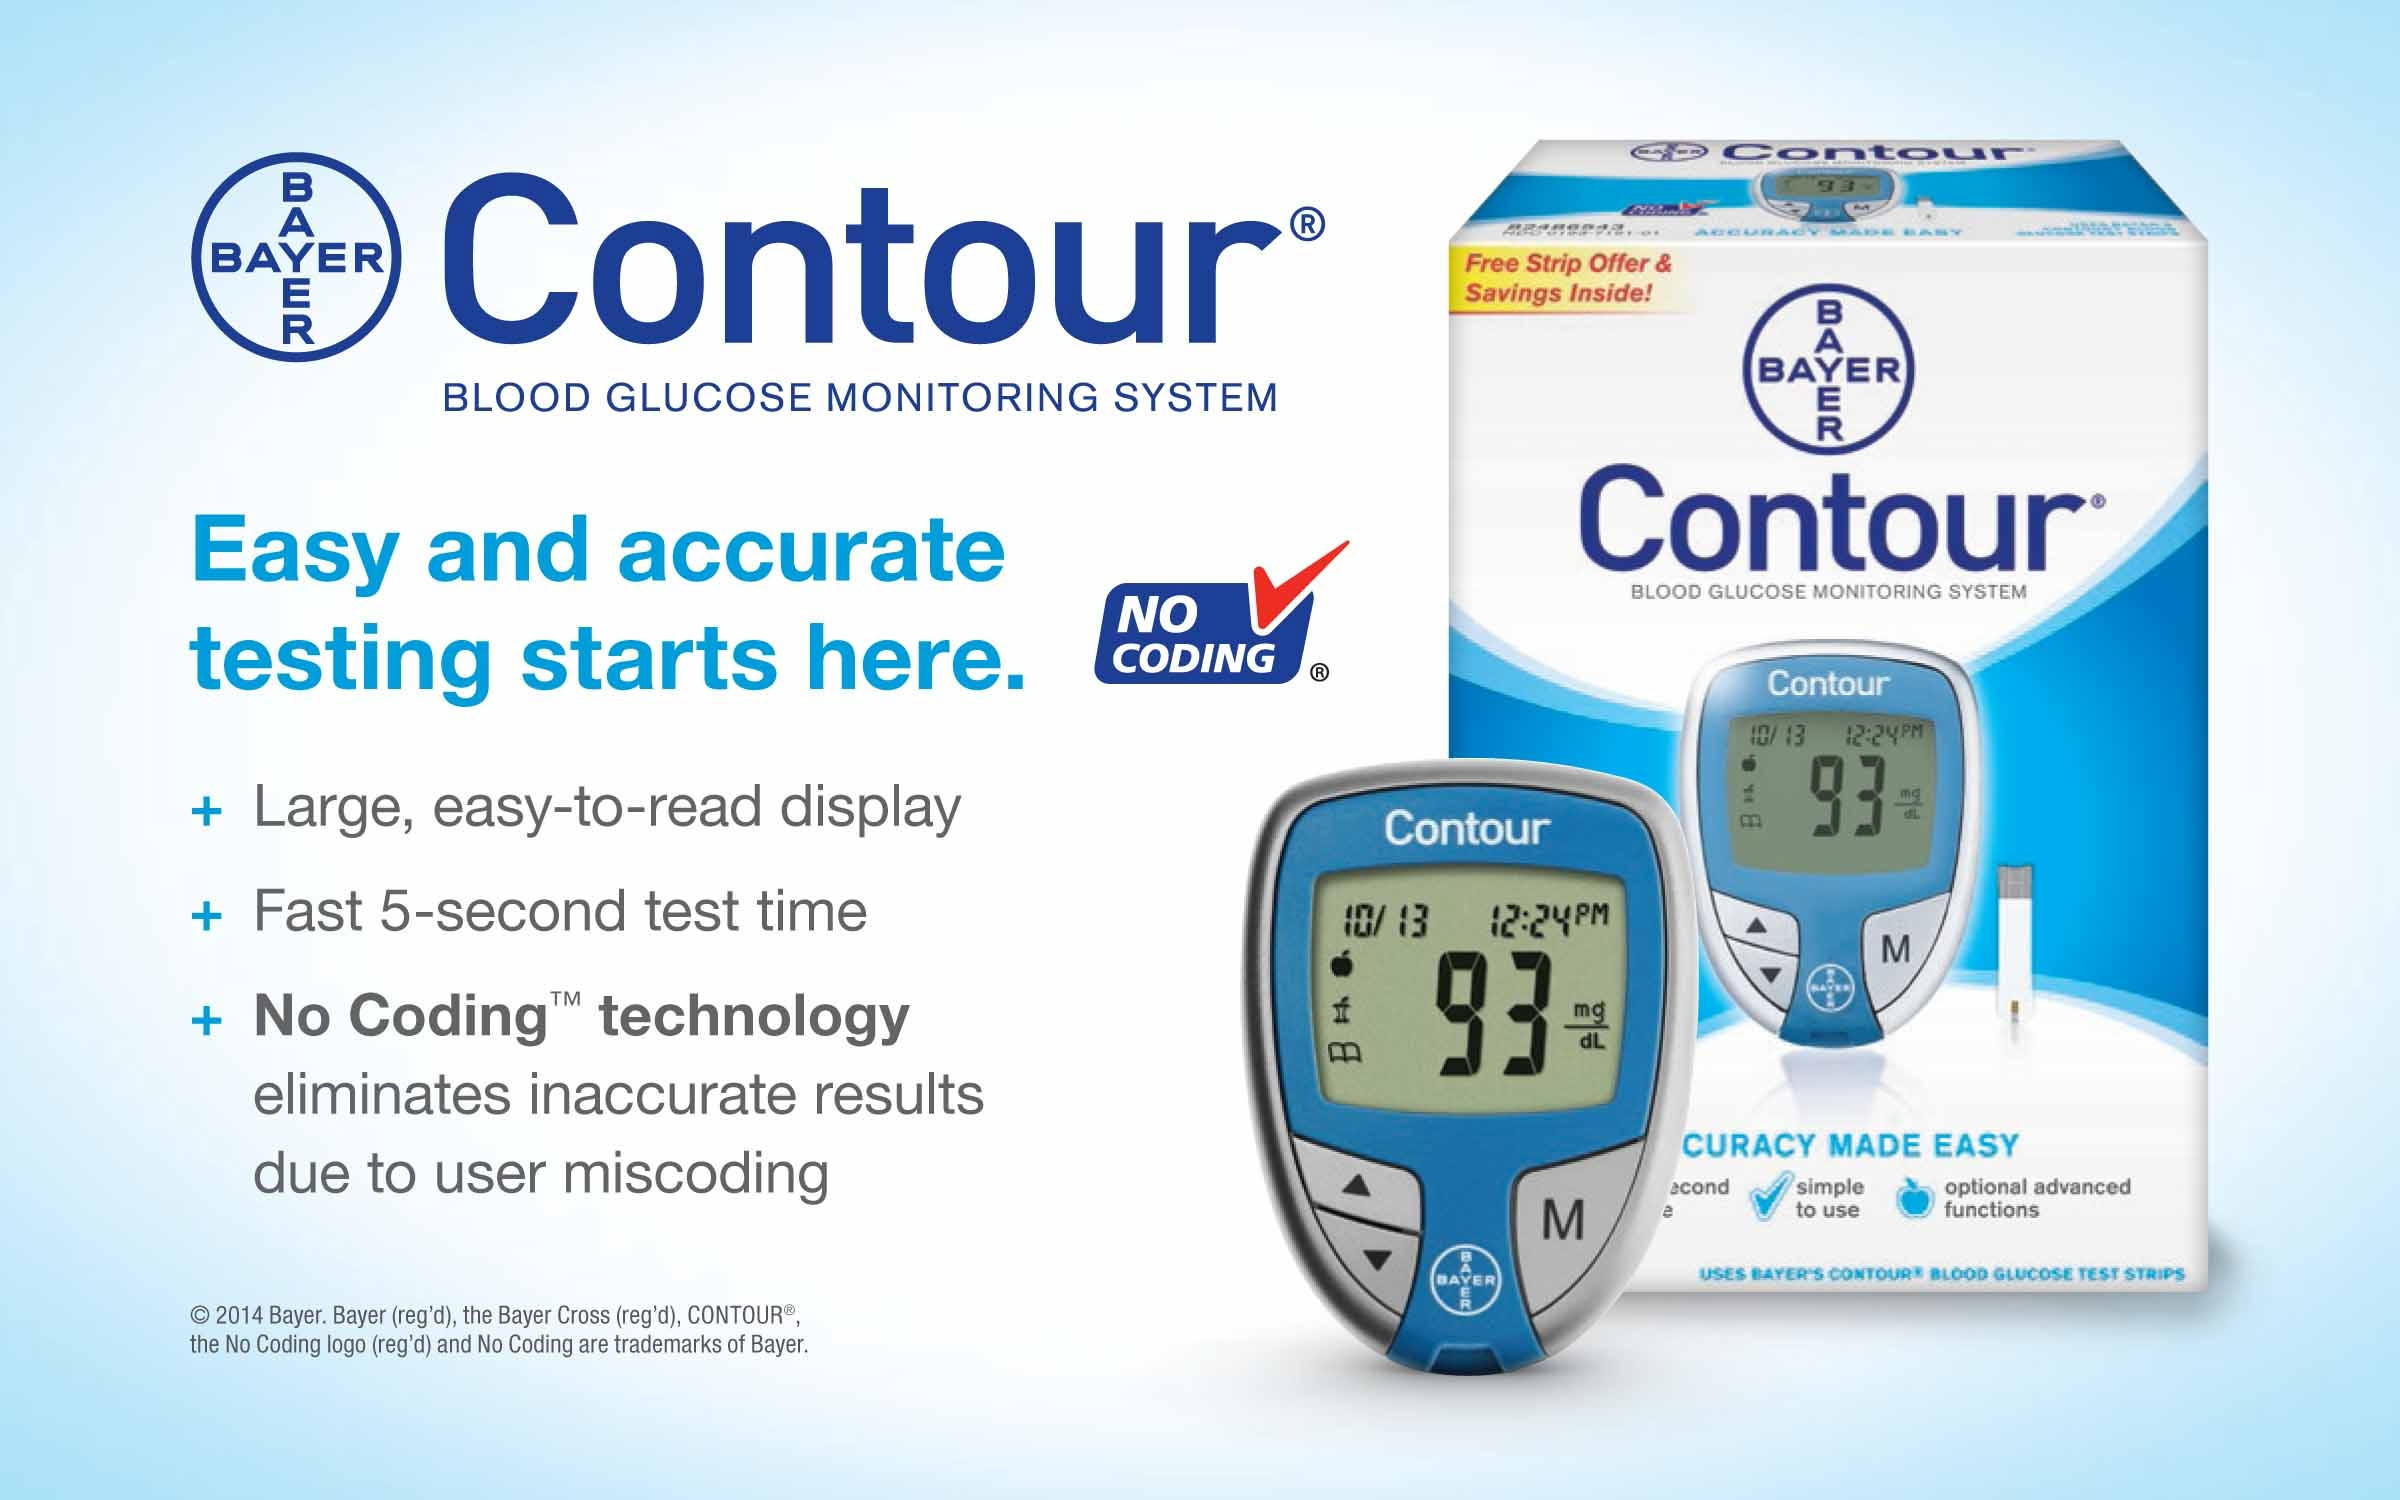 Bayer Contour Blood Glucose Monitoring System